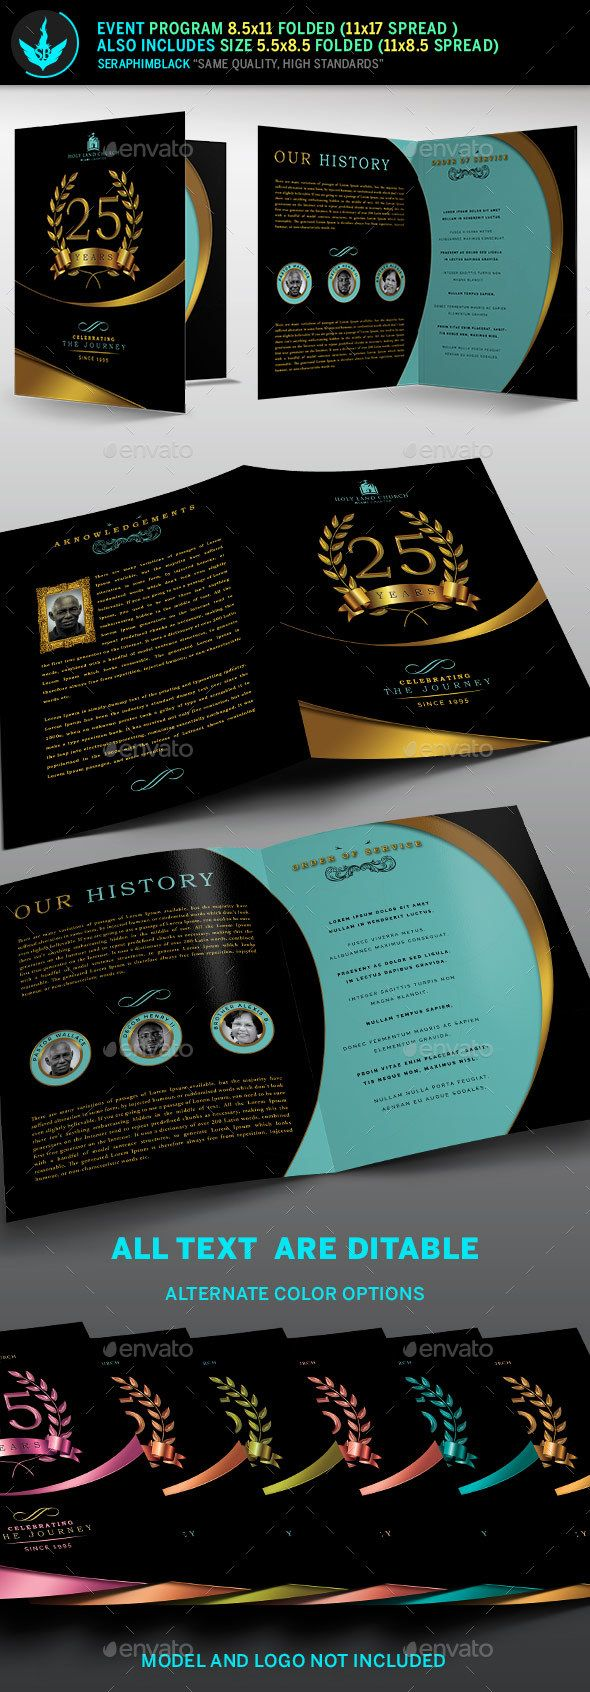 Gold Black plus Teal Anniversary Program Template — PSD Template #auction #souvenir book • Download ➝ https://graphicriver.net/item/gold-black-plus-teal-anniversary-program-template/18180609?ref=pxcr